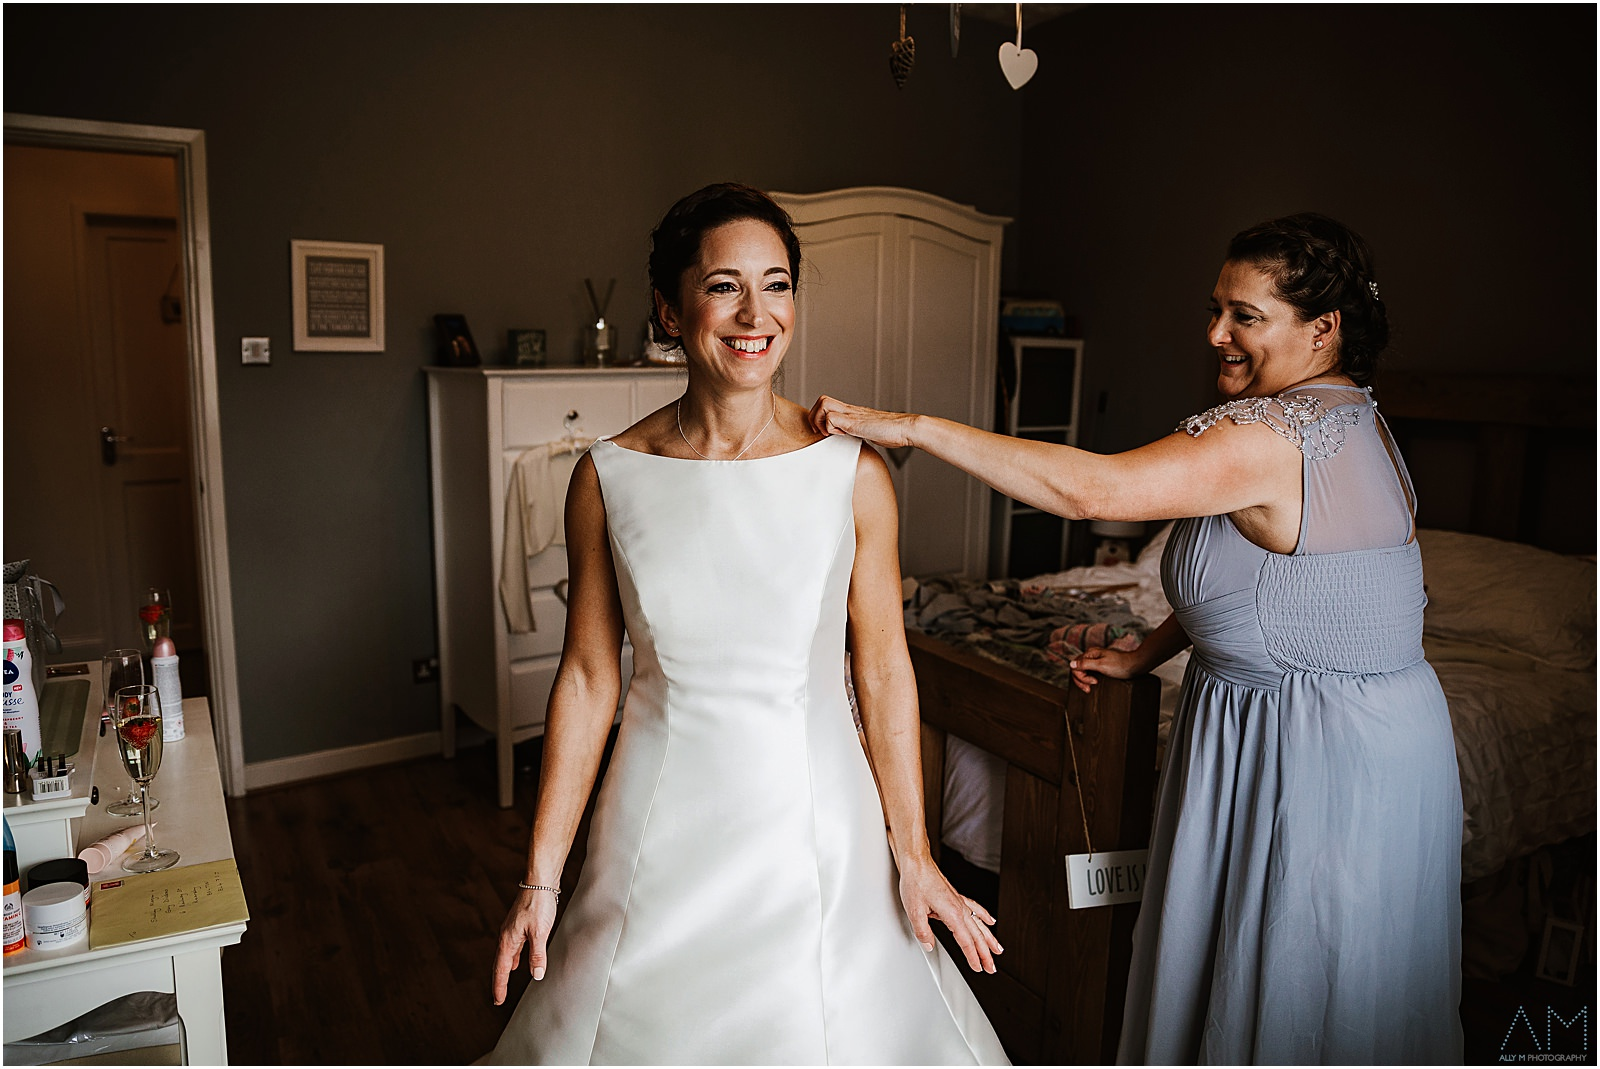 Bridesmaid helping the bride into her wedding dress